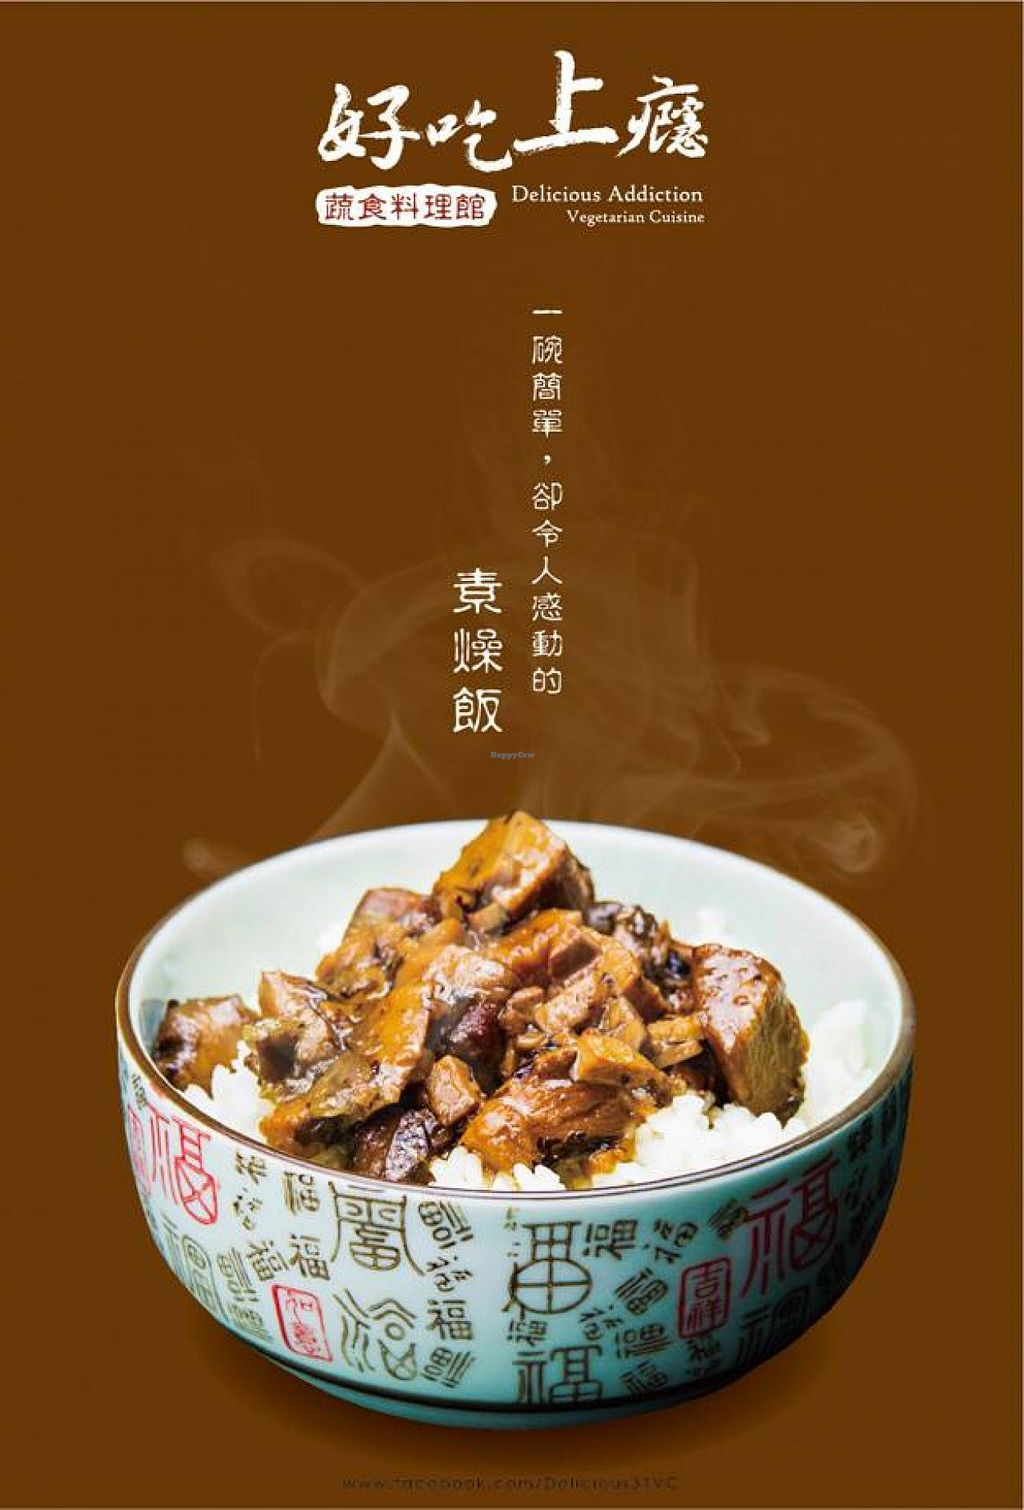 """Photo of Hao Chi Shang Yin  by <a href=""""/members/profile/nickb"""">nickb</a> <br/>Rice with vegan mince pork sauce <br/> November 1, 2014  - <a href='/contact/abuse/image/52714/84355'>Report</a>"""